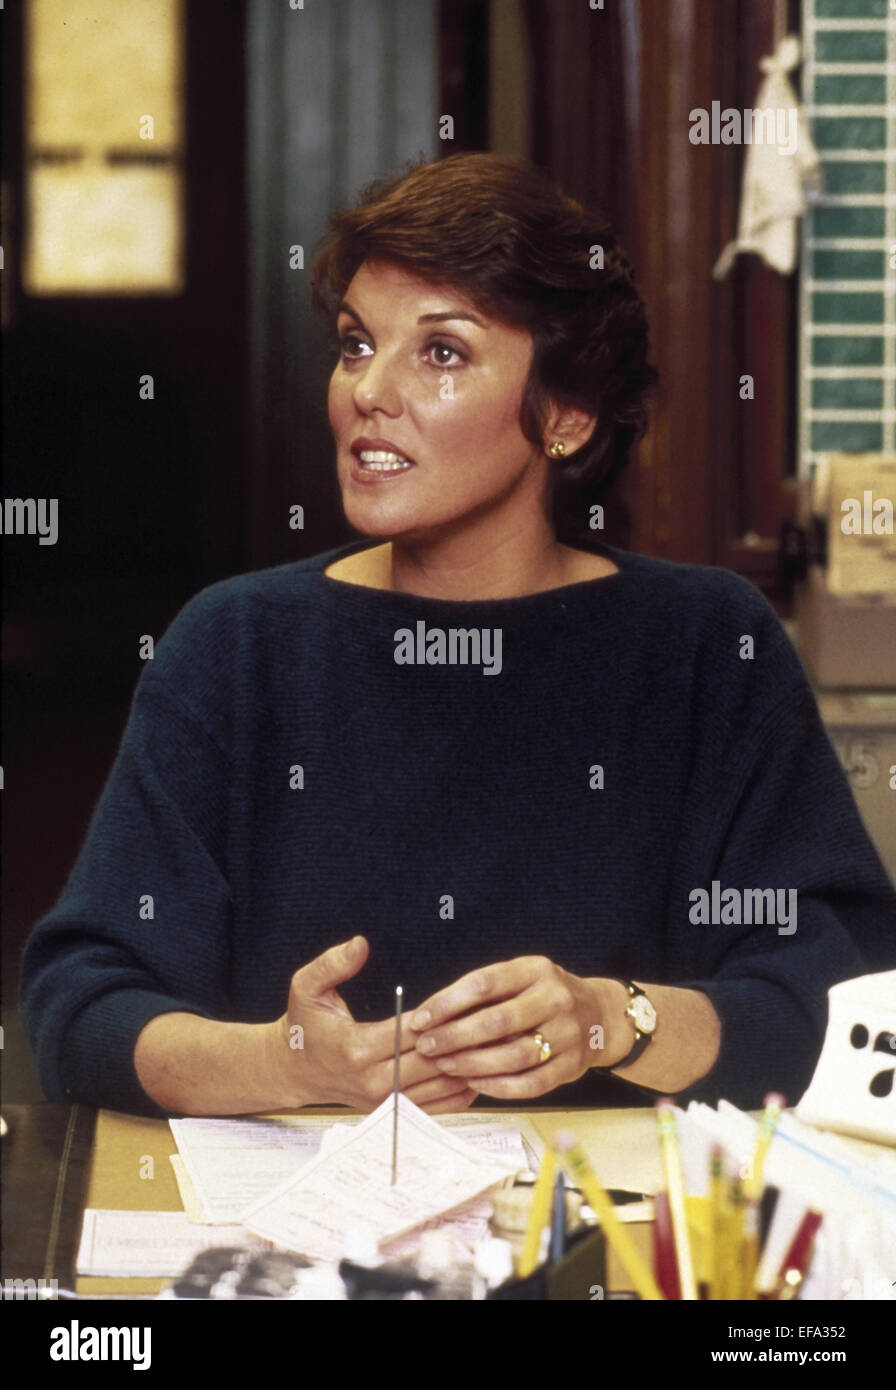 TYNE DALY CAGNEY & LACEY (1982) - Stock Image